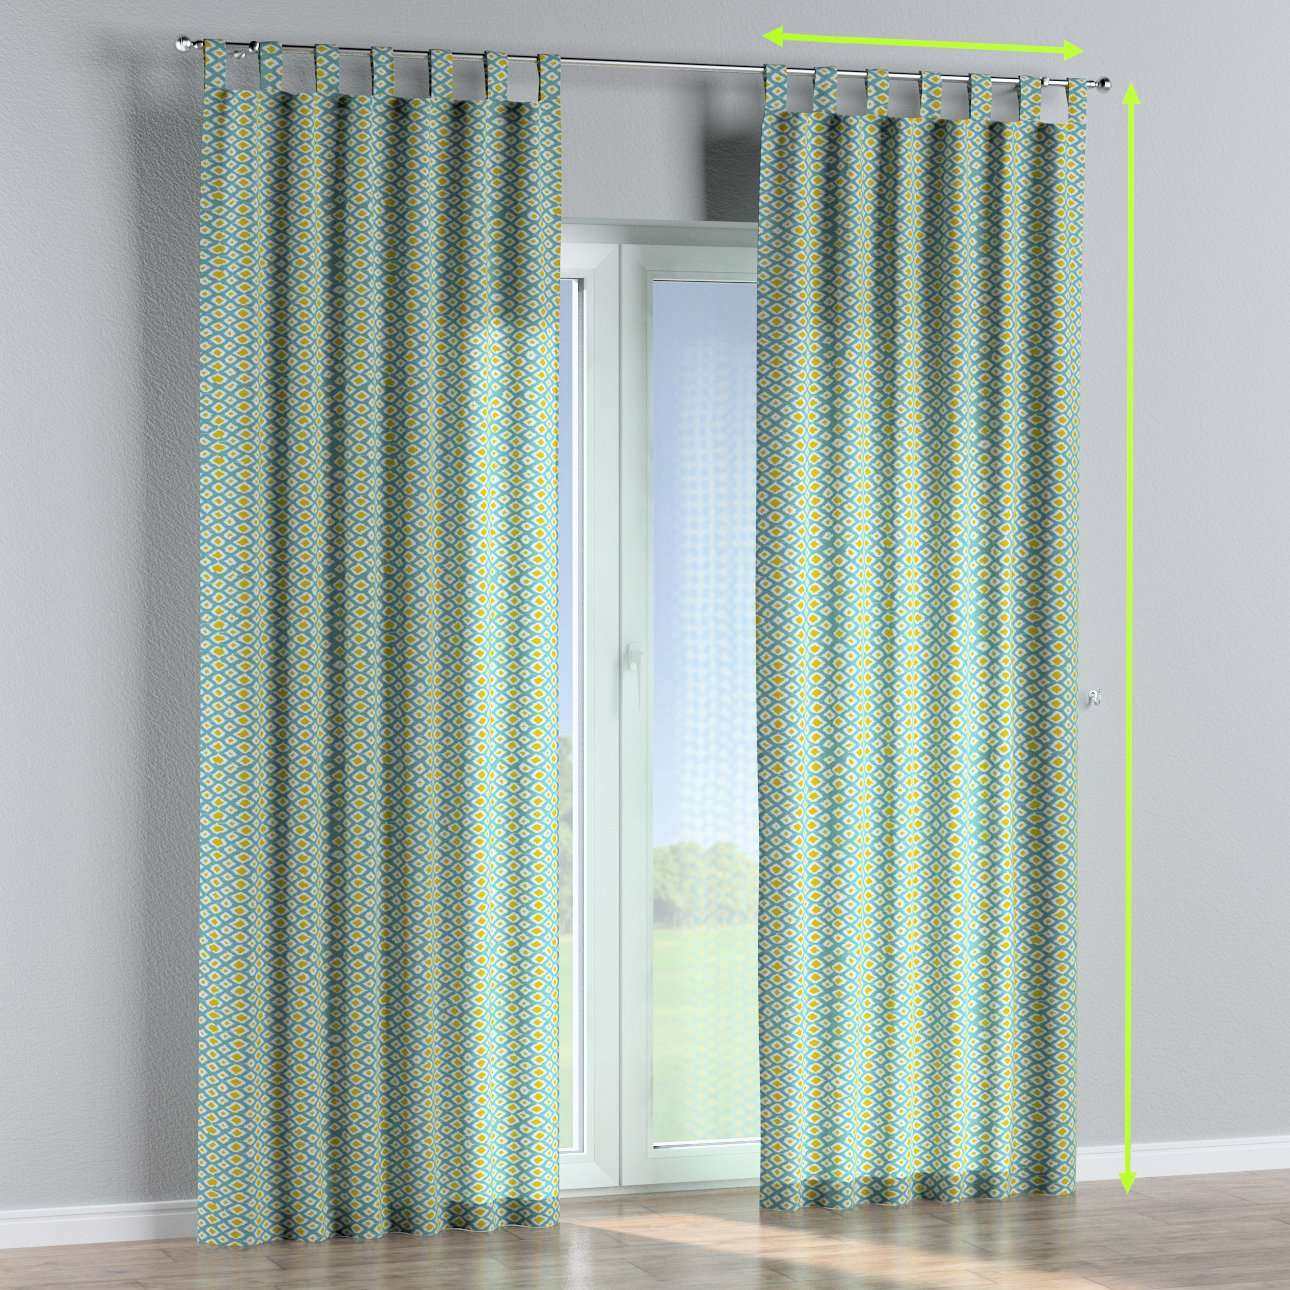 Tab top lined curtains in collection Comic Book & Geo Prints, fabric: 141-20